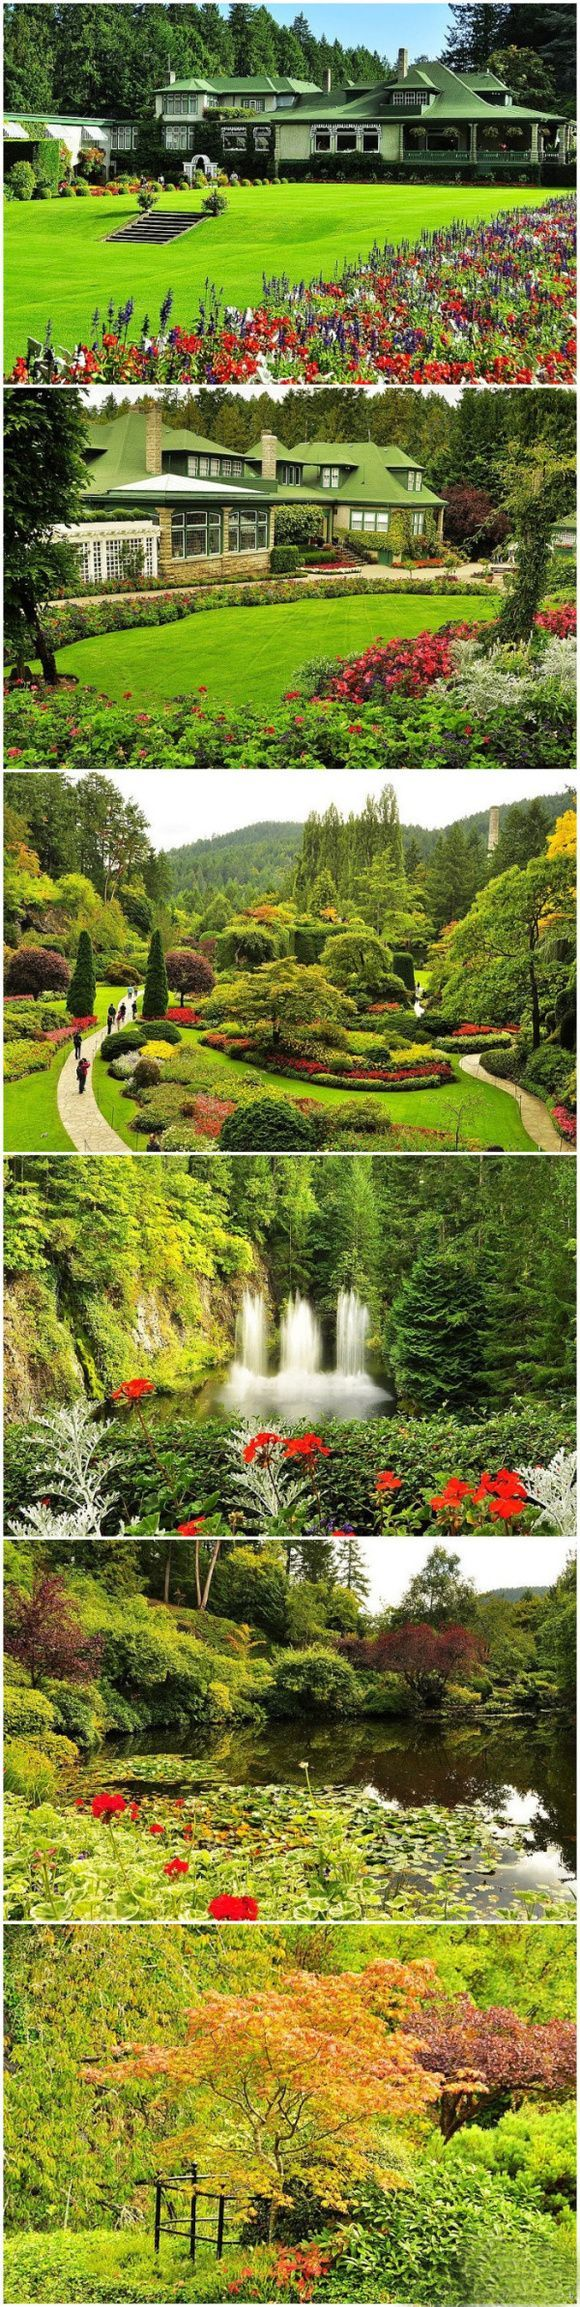 Canada's private estate · Butchart Gardens in Victoria BC Worth the time to see when there! #butchartgardens Canada's private estate · Butchart Gardens in Victoria BC Worth the time to see when there! #butchartgardens